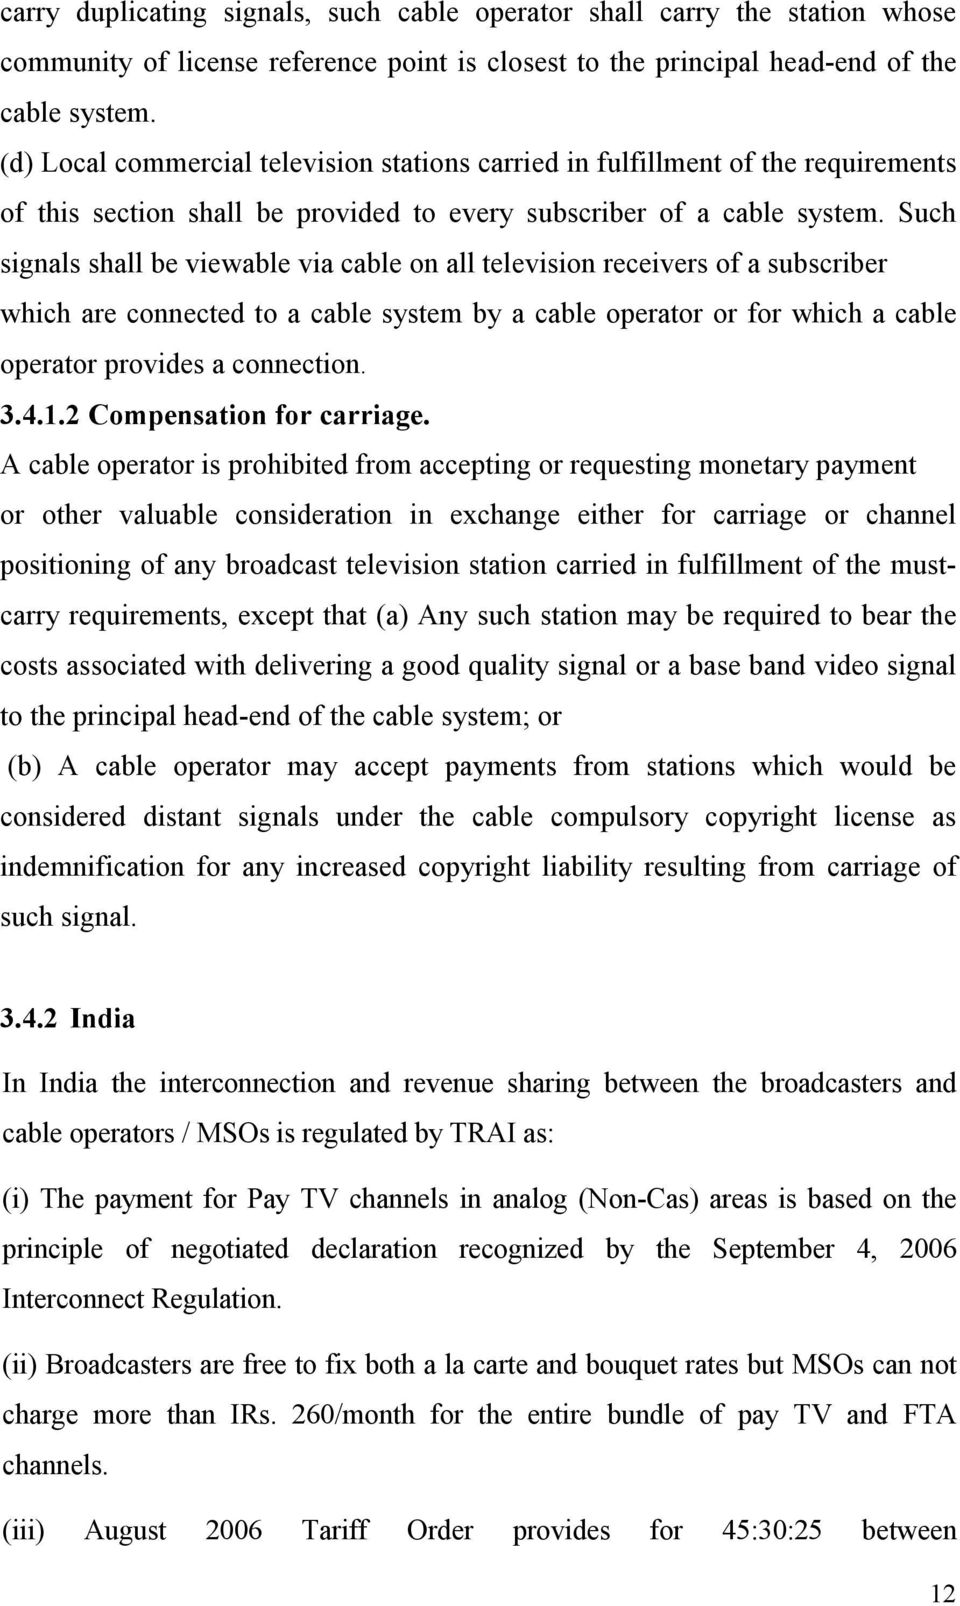 Such signals shall be viewable via cable on all television receivers of a subscriber which are connected to a cable system by a cable operator or for which a cable operator provides a connection. 3.4.